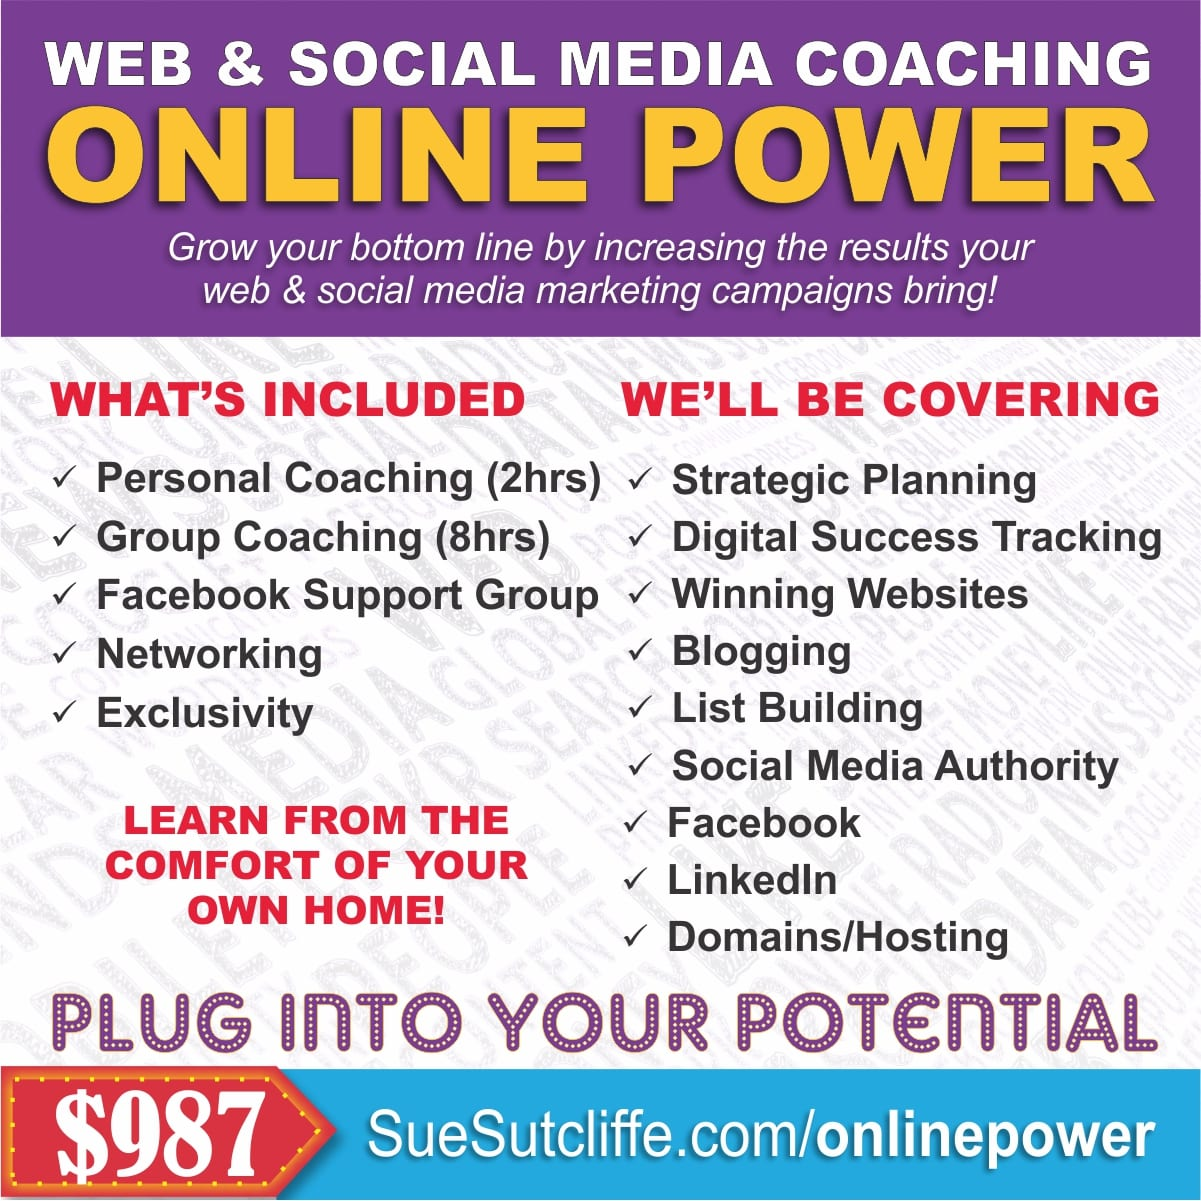 ONLINE POWER COACHING